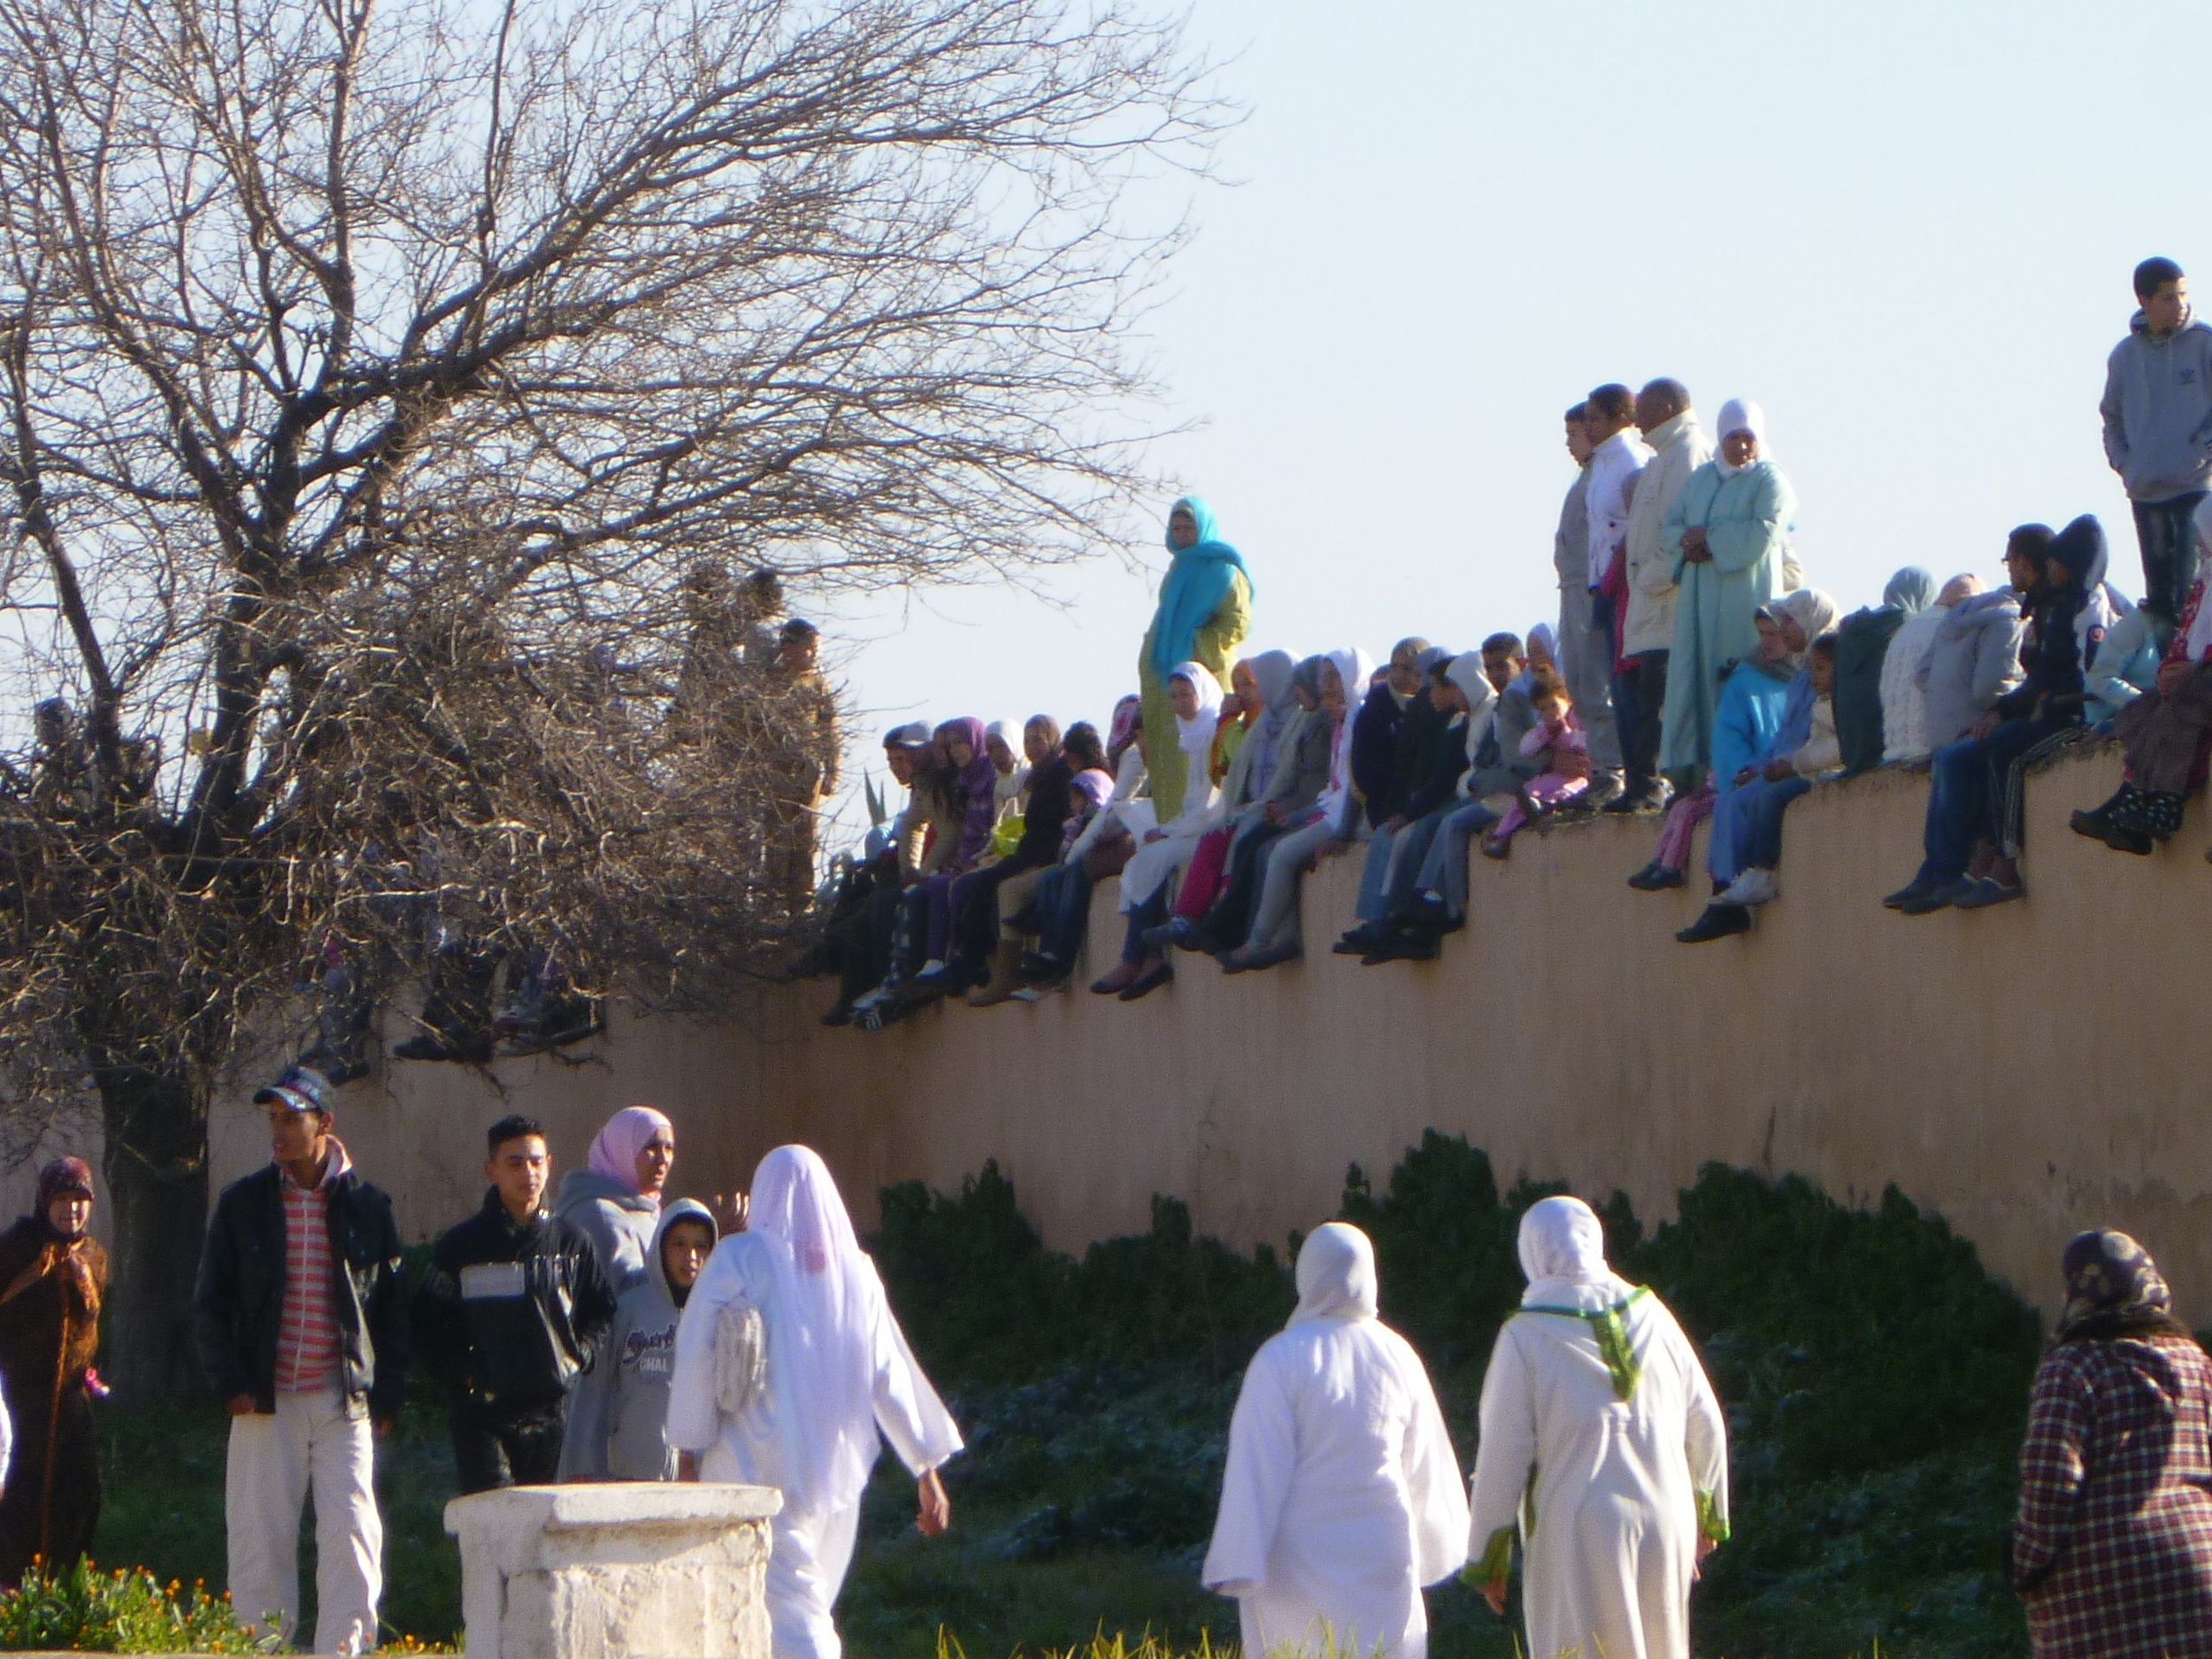 Pilgrims come fromall over Morocco to honor Sheik Al-Kamal during the MIloud festival in Meknes.